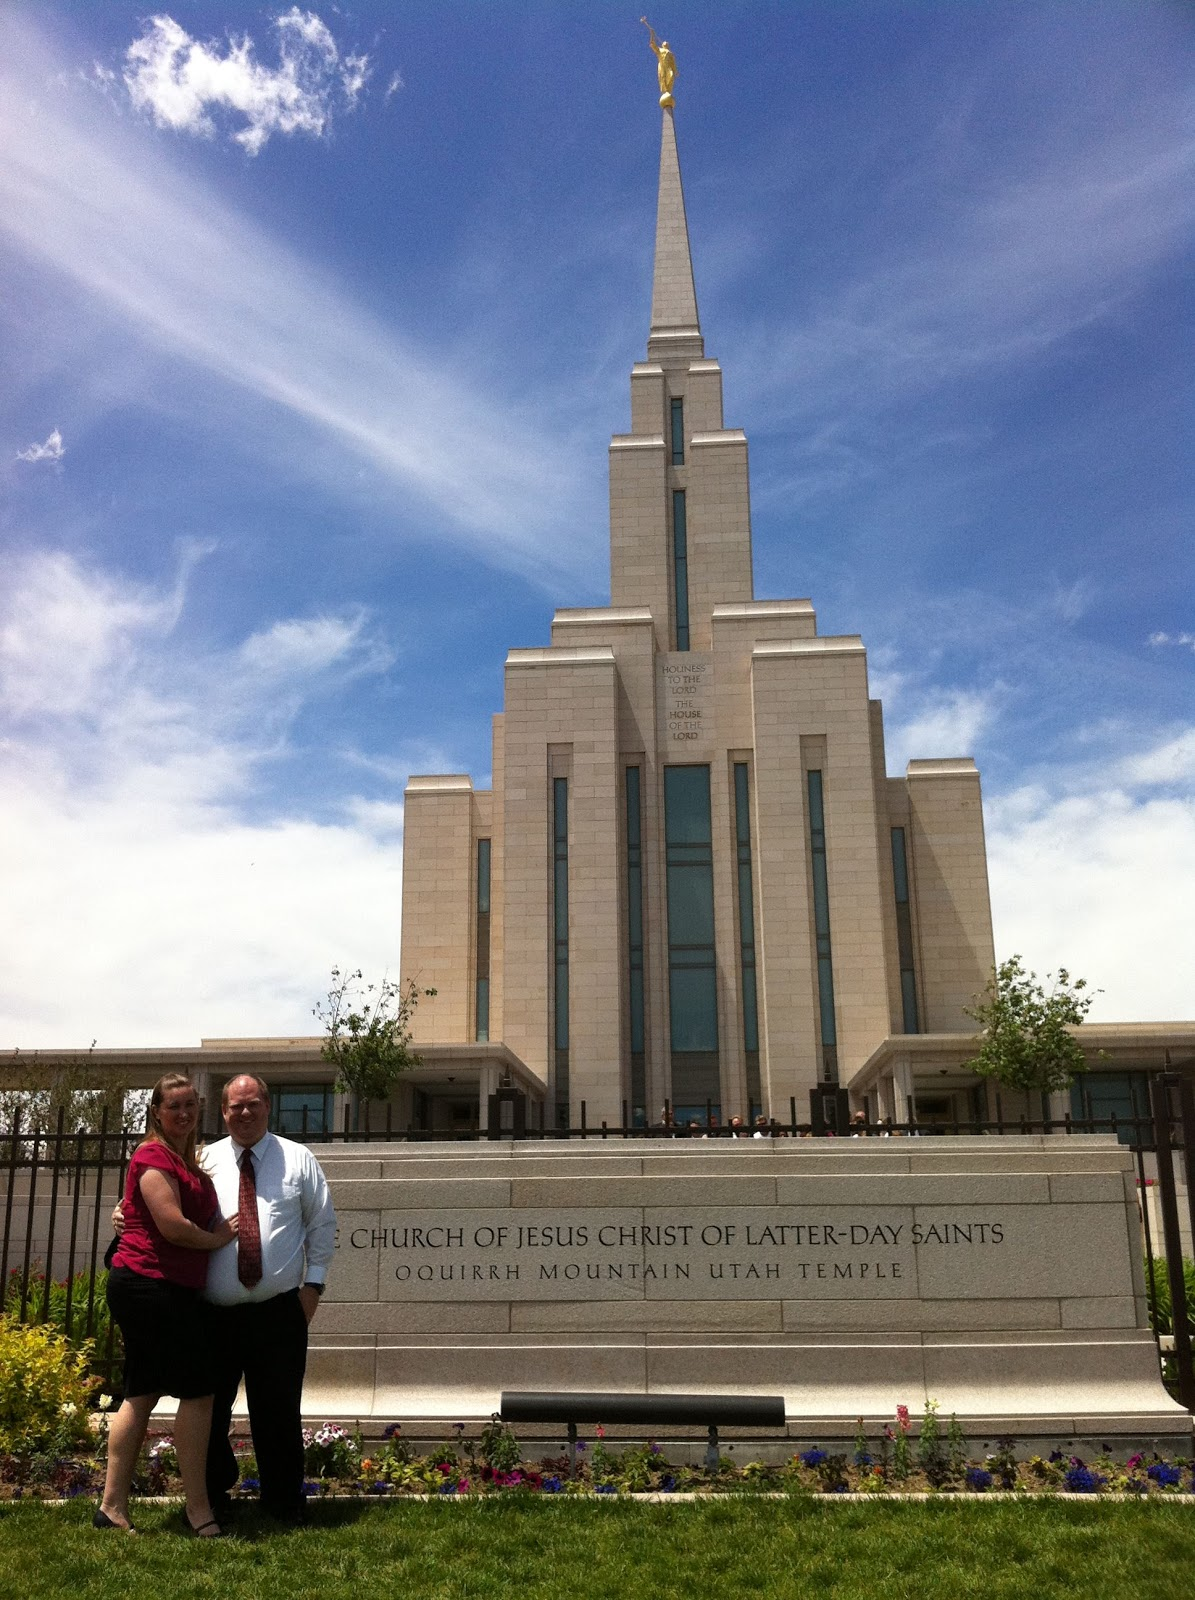 Temple Tourism: Oquirrh Mountain Utah Temple